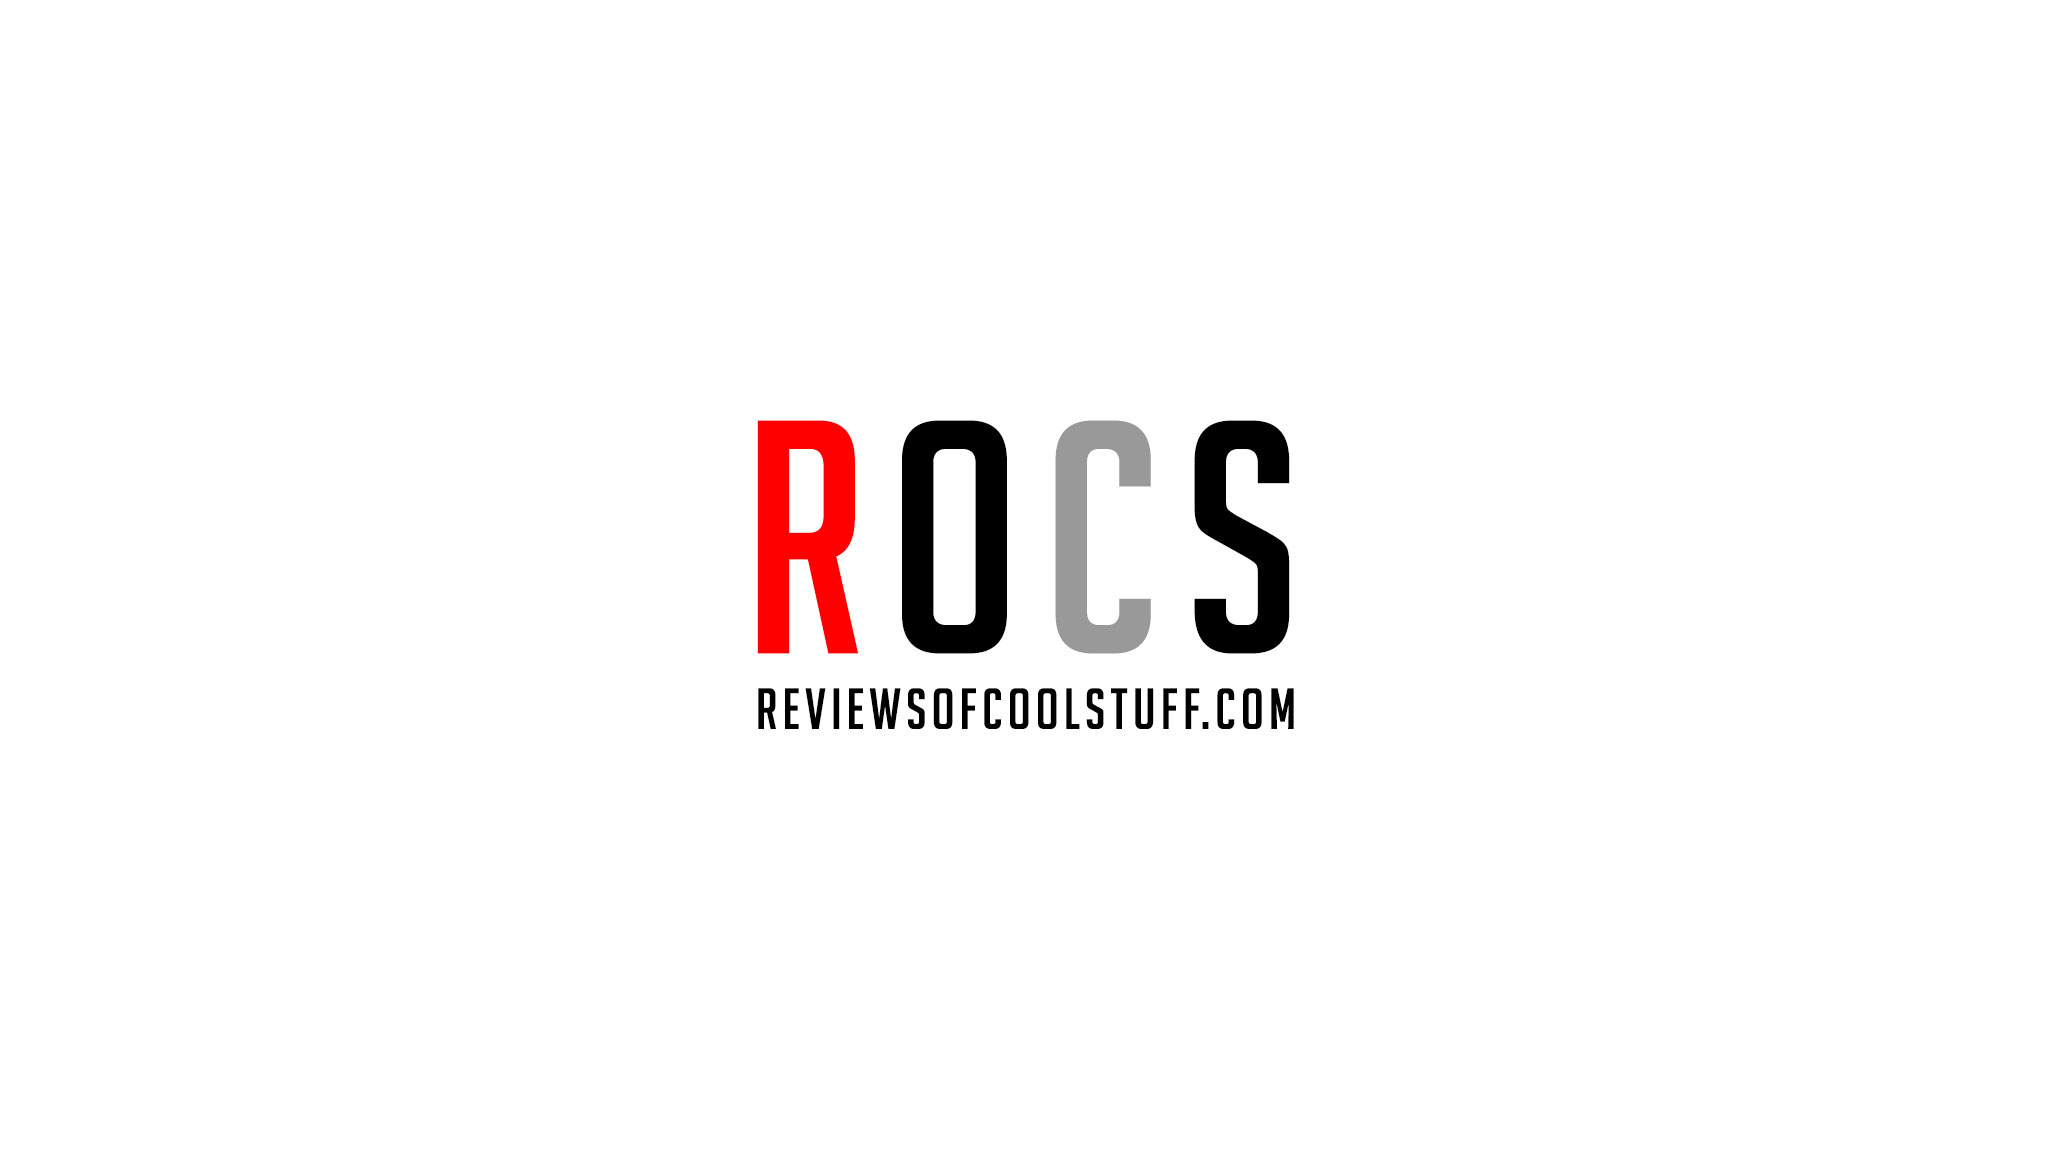 Reviews of Cool Stuff Learn how to FREE stuff by posting